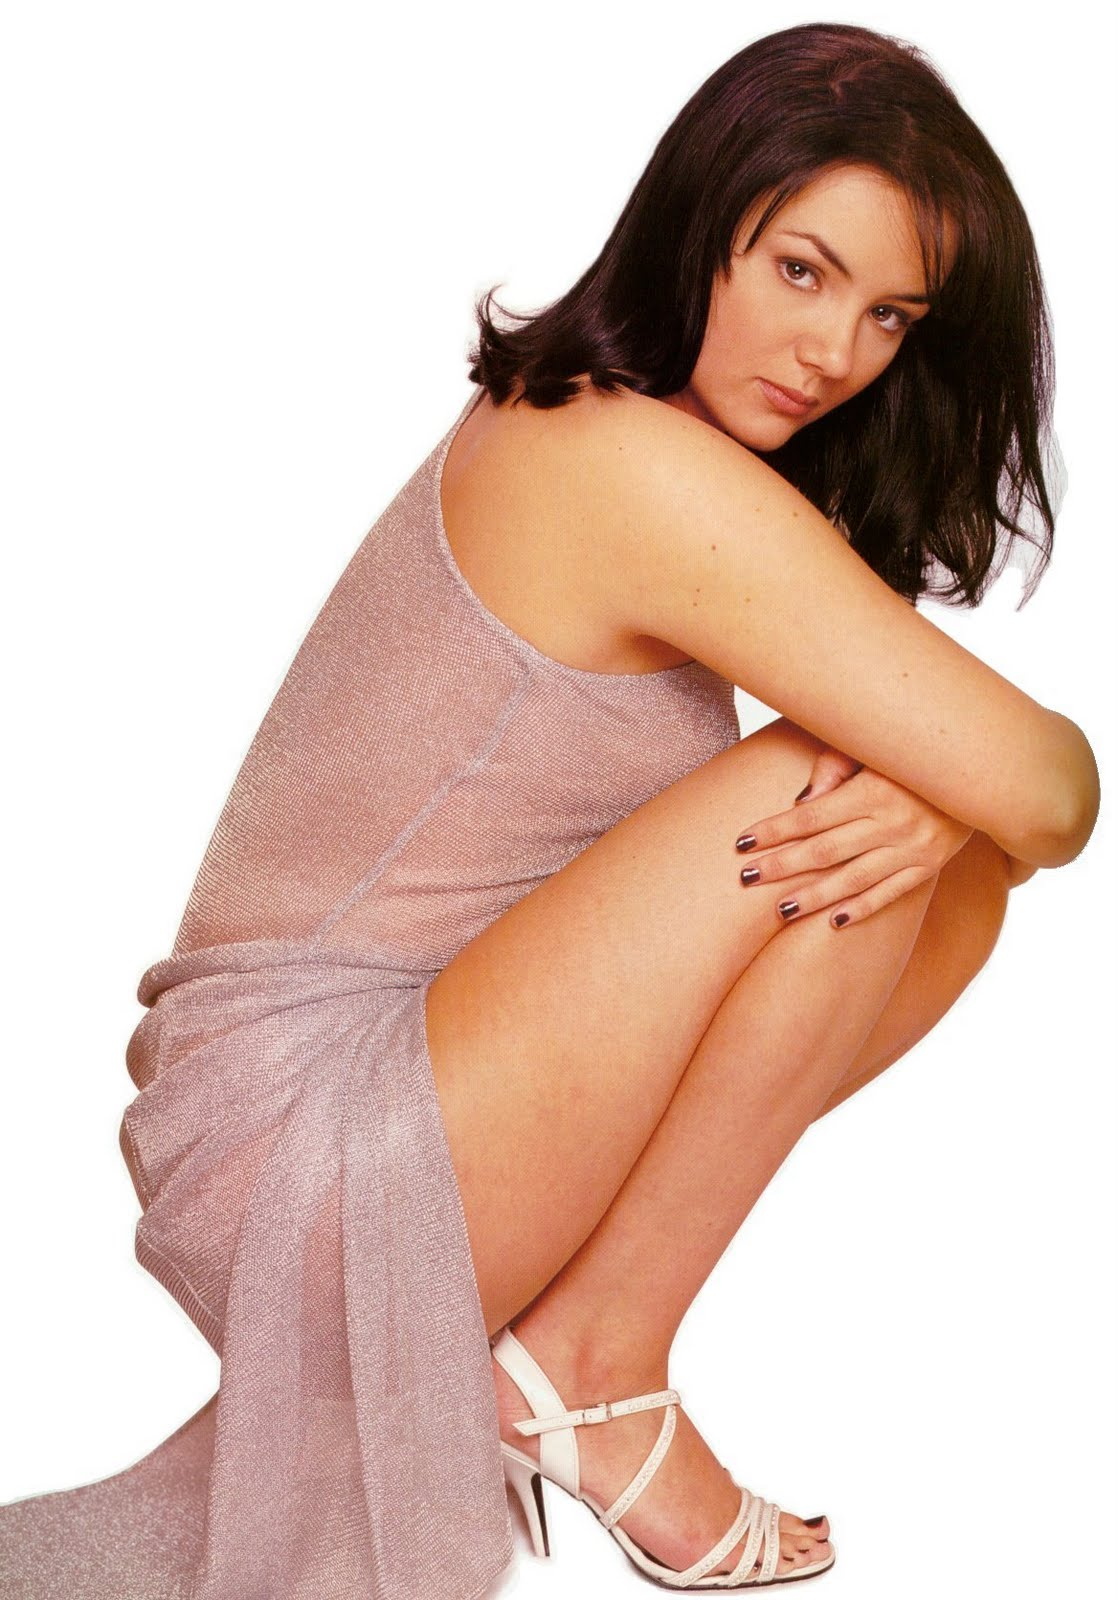 Martine McCutcheon (born 1976) nudes (47 photos), Tits, Cleavage, Selfie, butt 2017